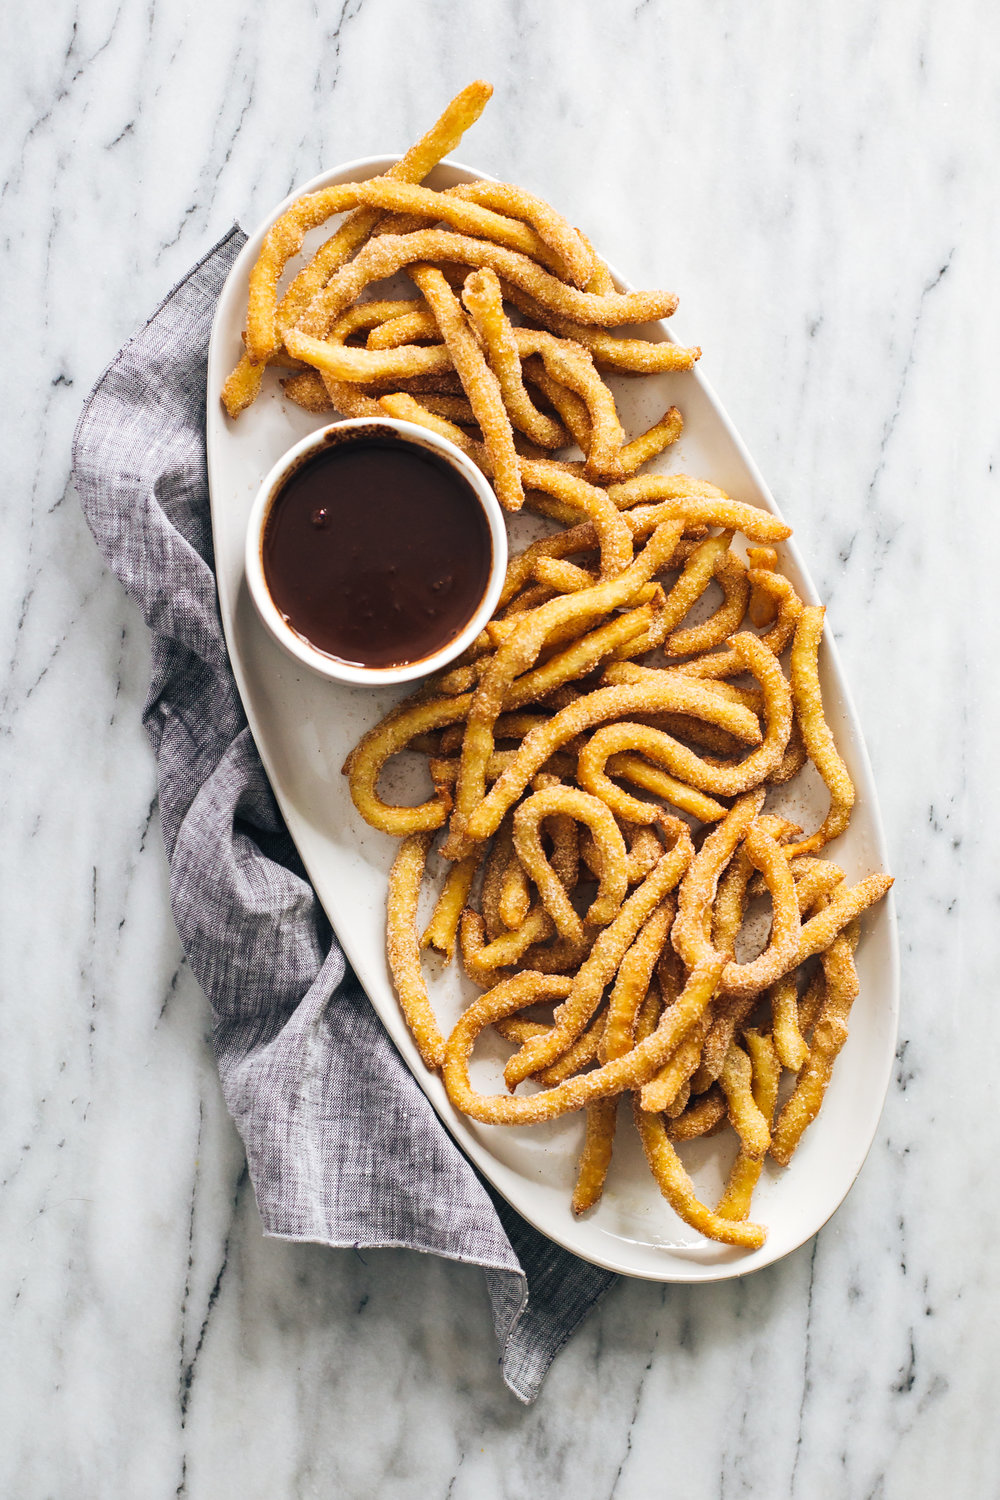 churro_fries_spicy_chocolate_dip-7.jpg